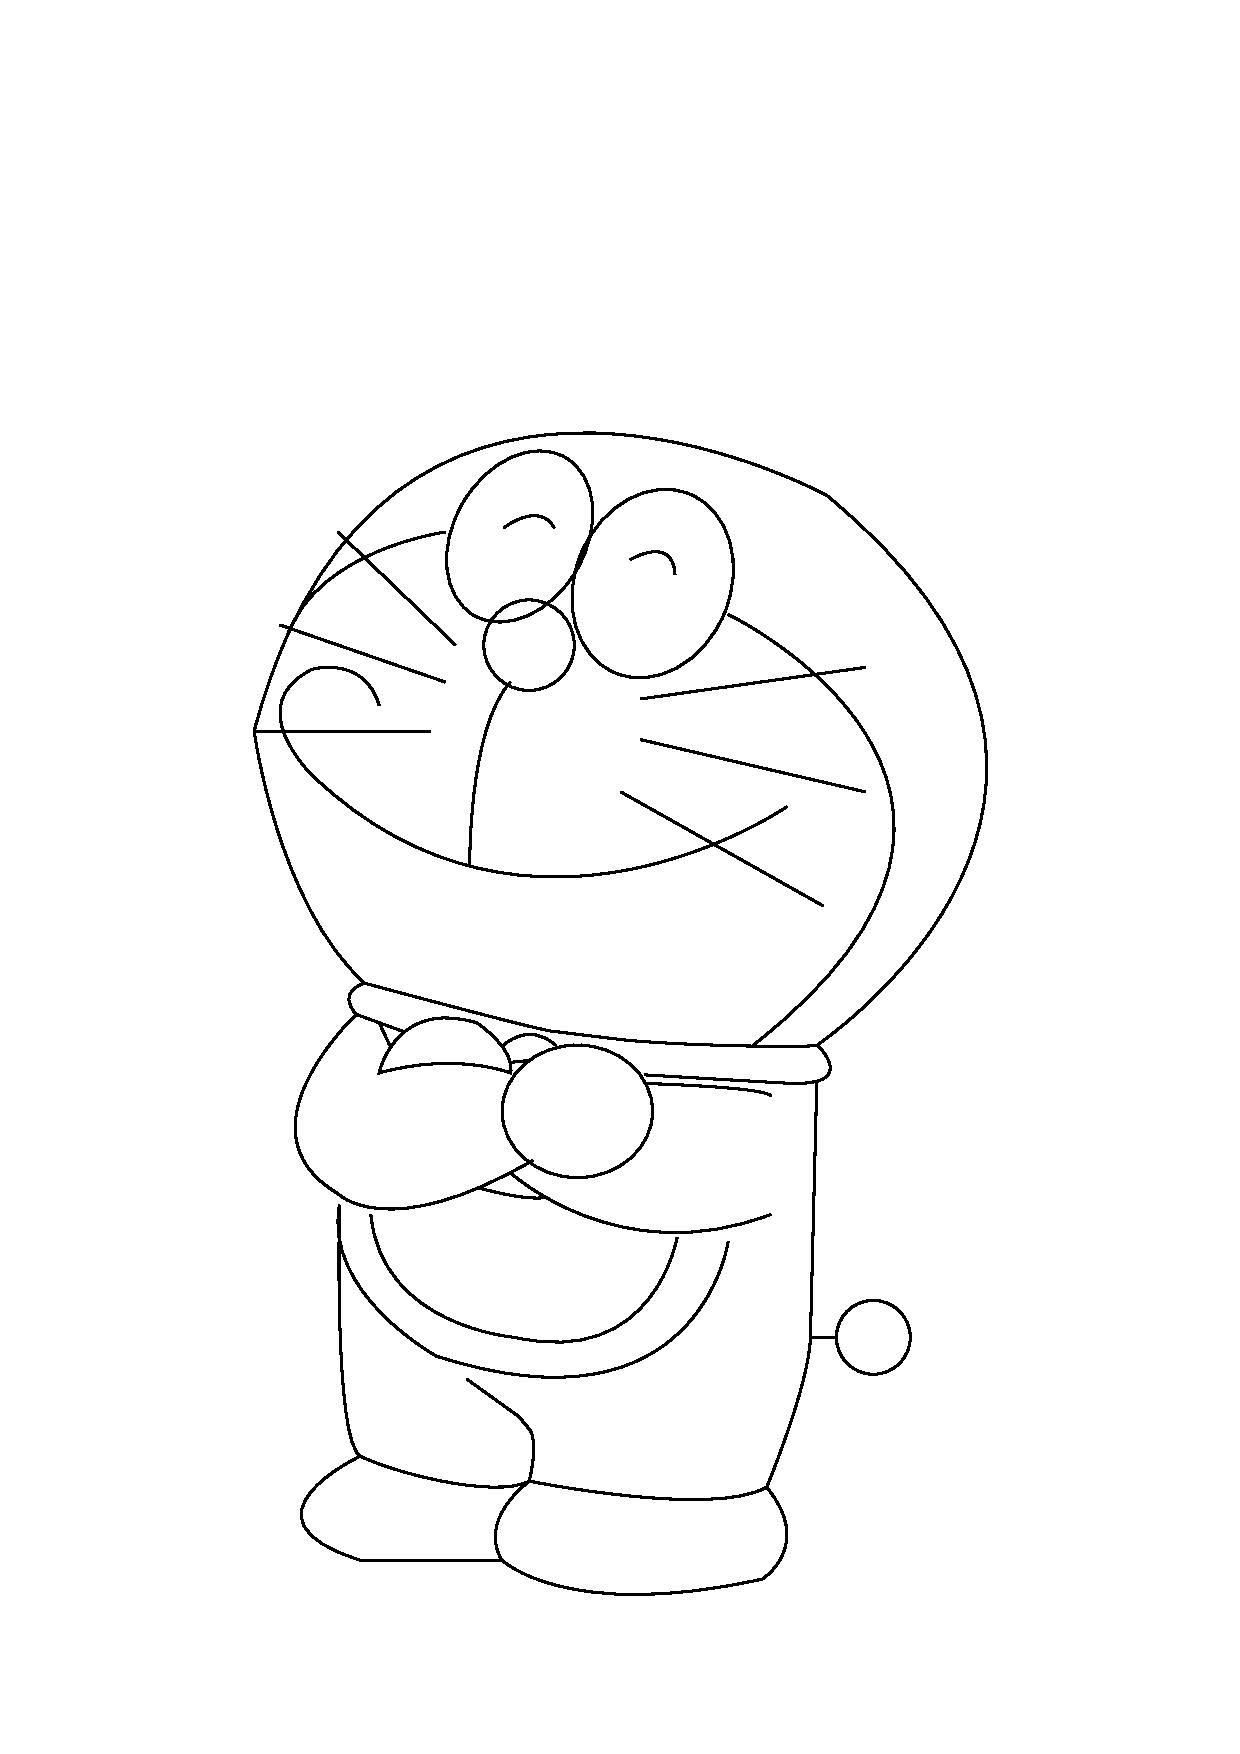 I will illustrate the diff Sketches or Cartoon characters through Pen tool